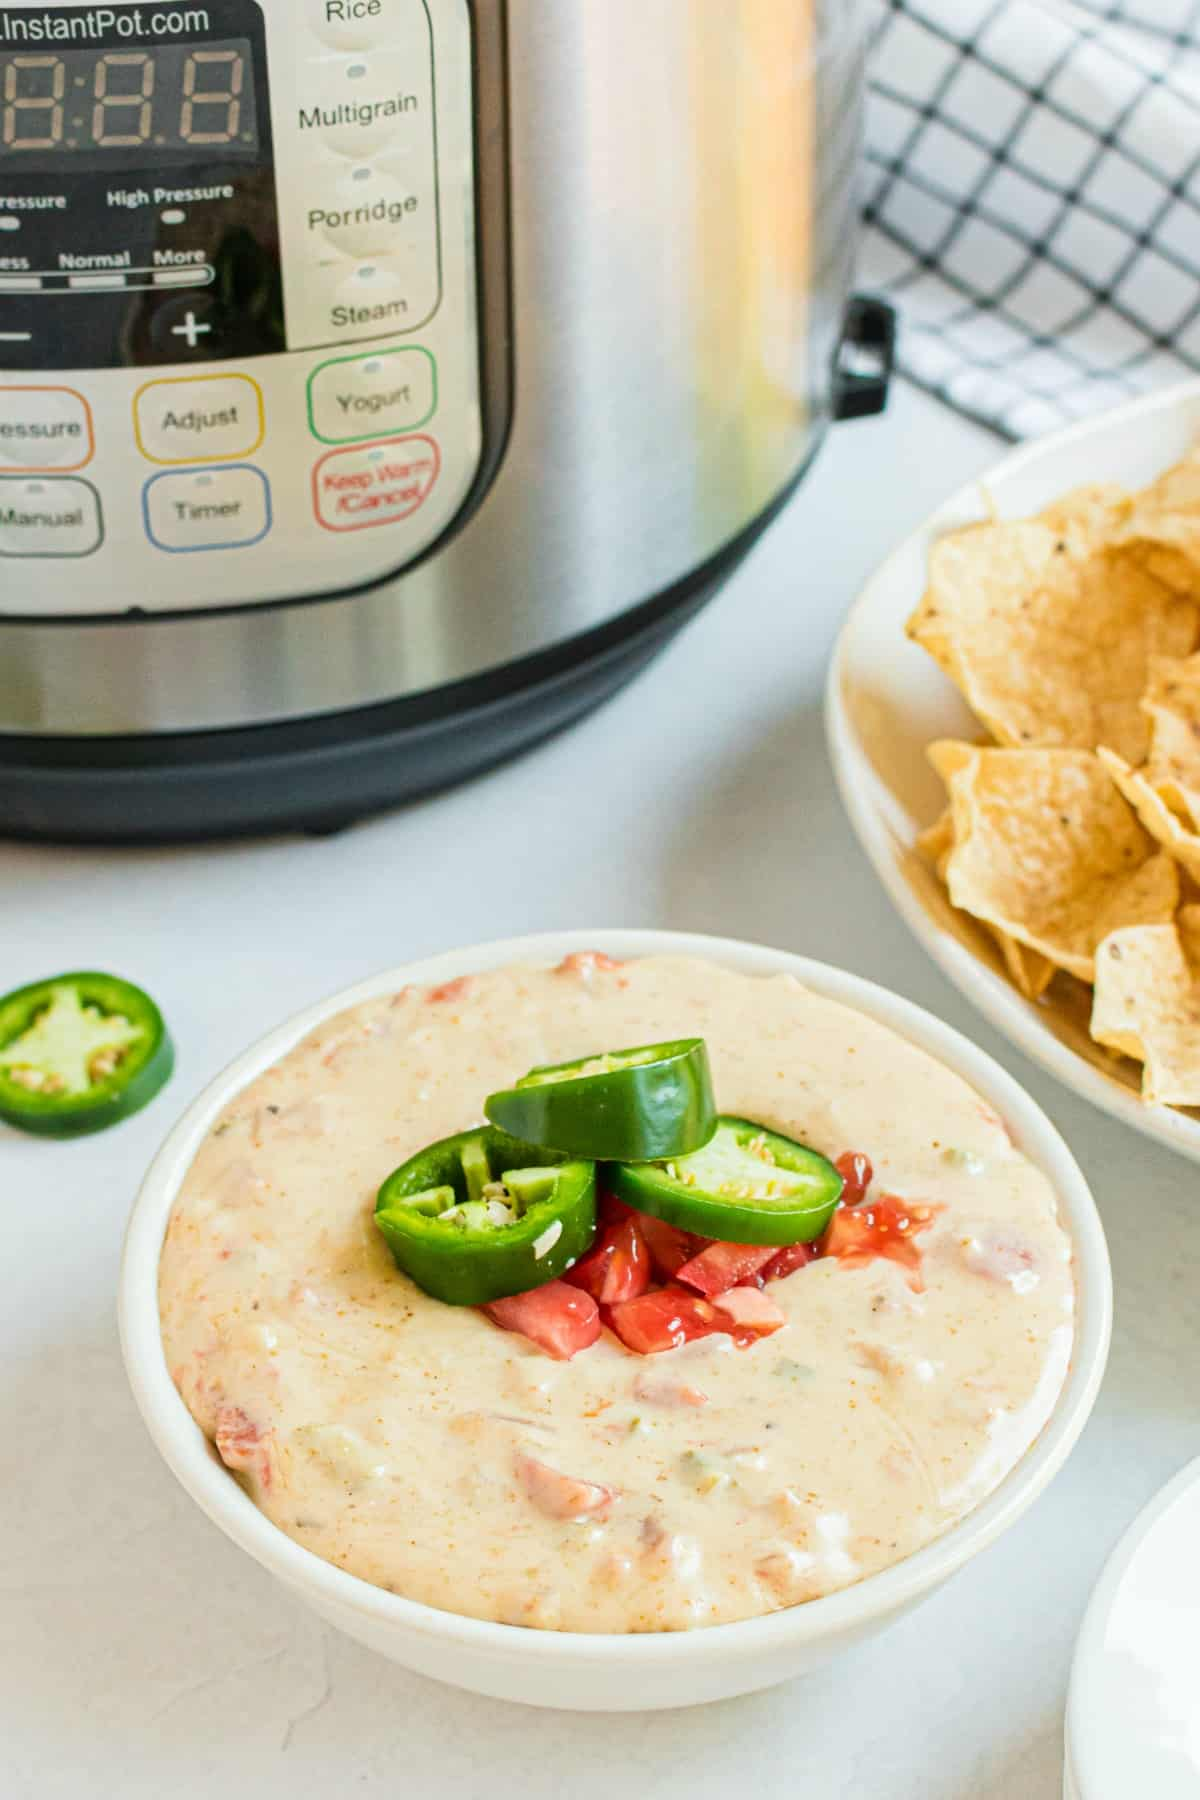 Queso in a white bowl with instant pot in background. Garnished with rotel tomatoes and jalapenos.